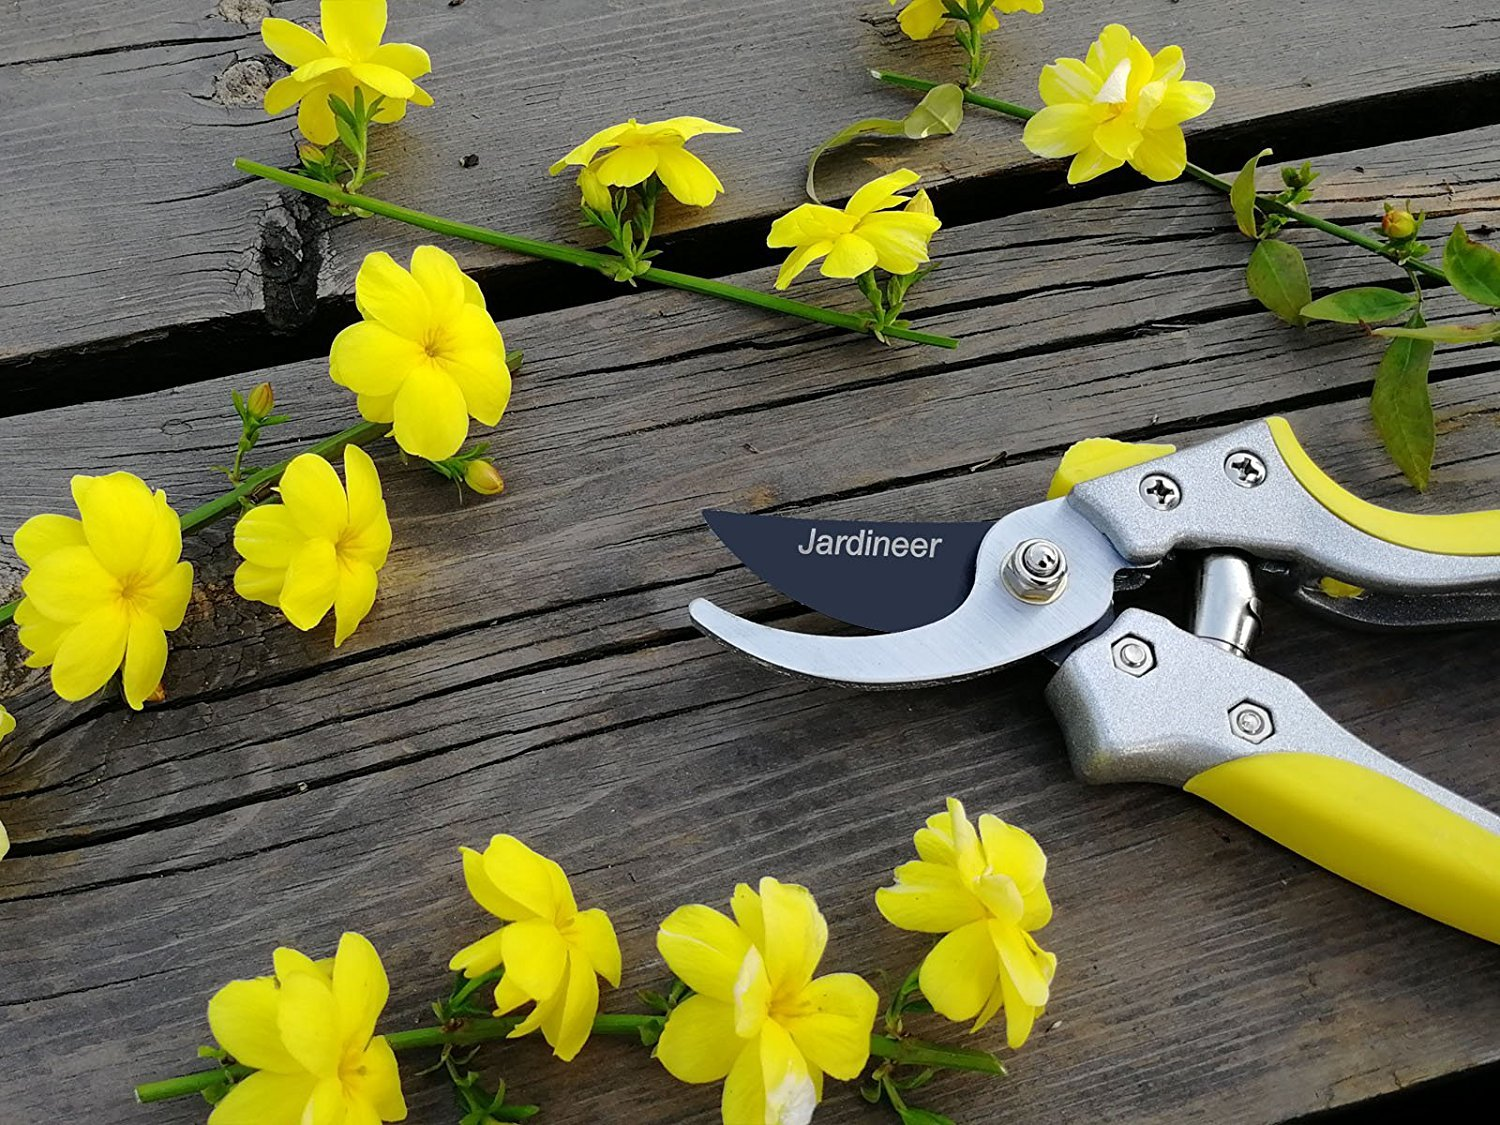 Jardineer Sharp and Durable Hand Bypass Pruners with Safety Lock, Tree Trimmers Secateurs, Garden Pruning Shears for Live Green Plants, Perfect Garden Clippers by Jardineer (Image #8)